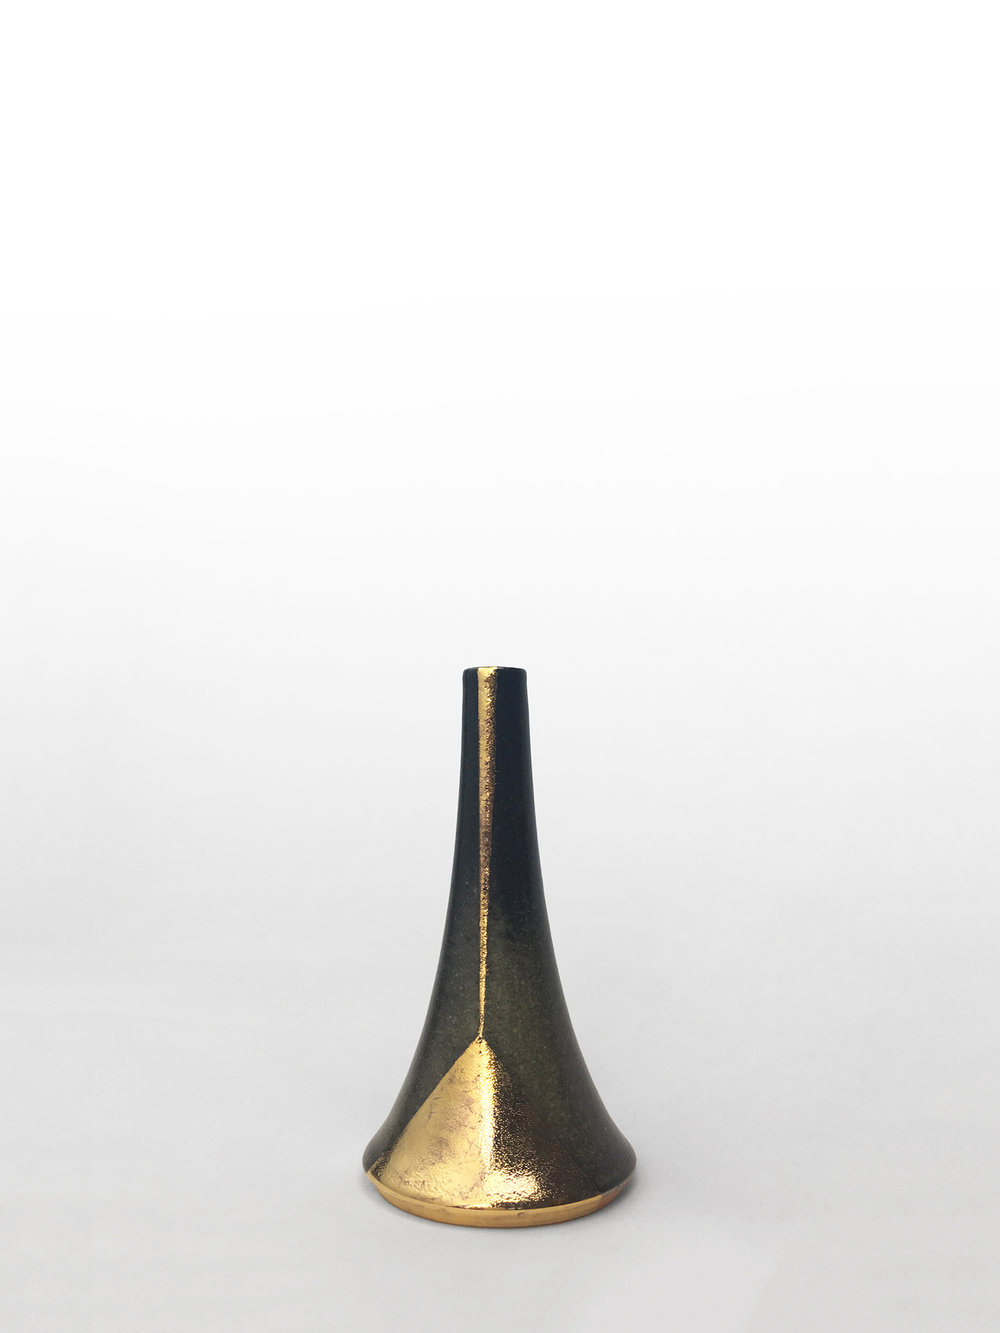 "Small volcano vase, hand-thrown porcelain with gray shino glaze and gold luster geometric design, 4 3/4"" x 2 1/2"", $150"